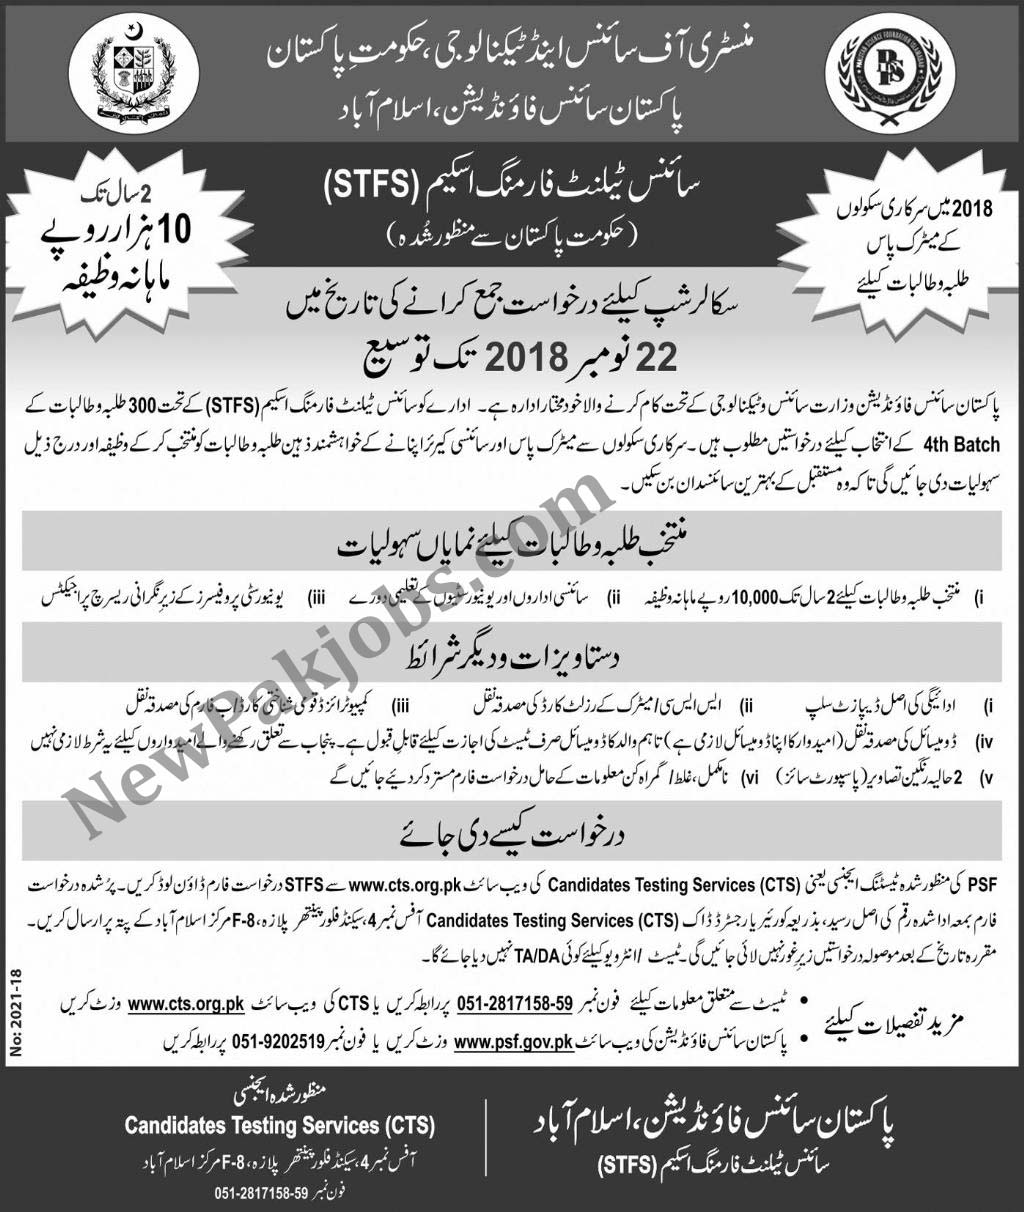 STFS Scholarship Scheme for Metric Students